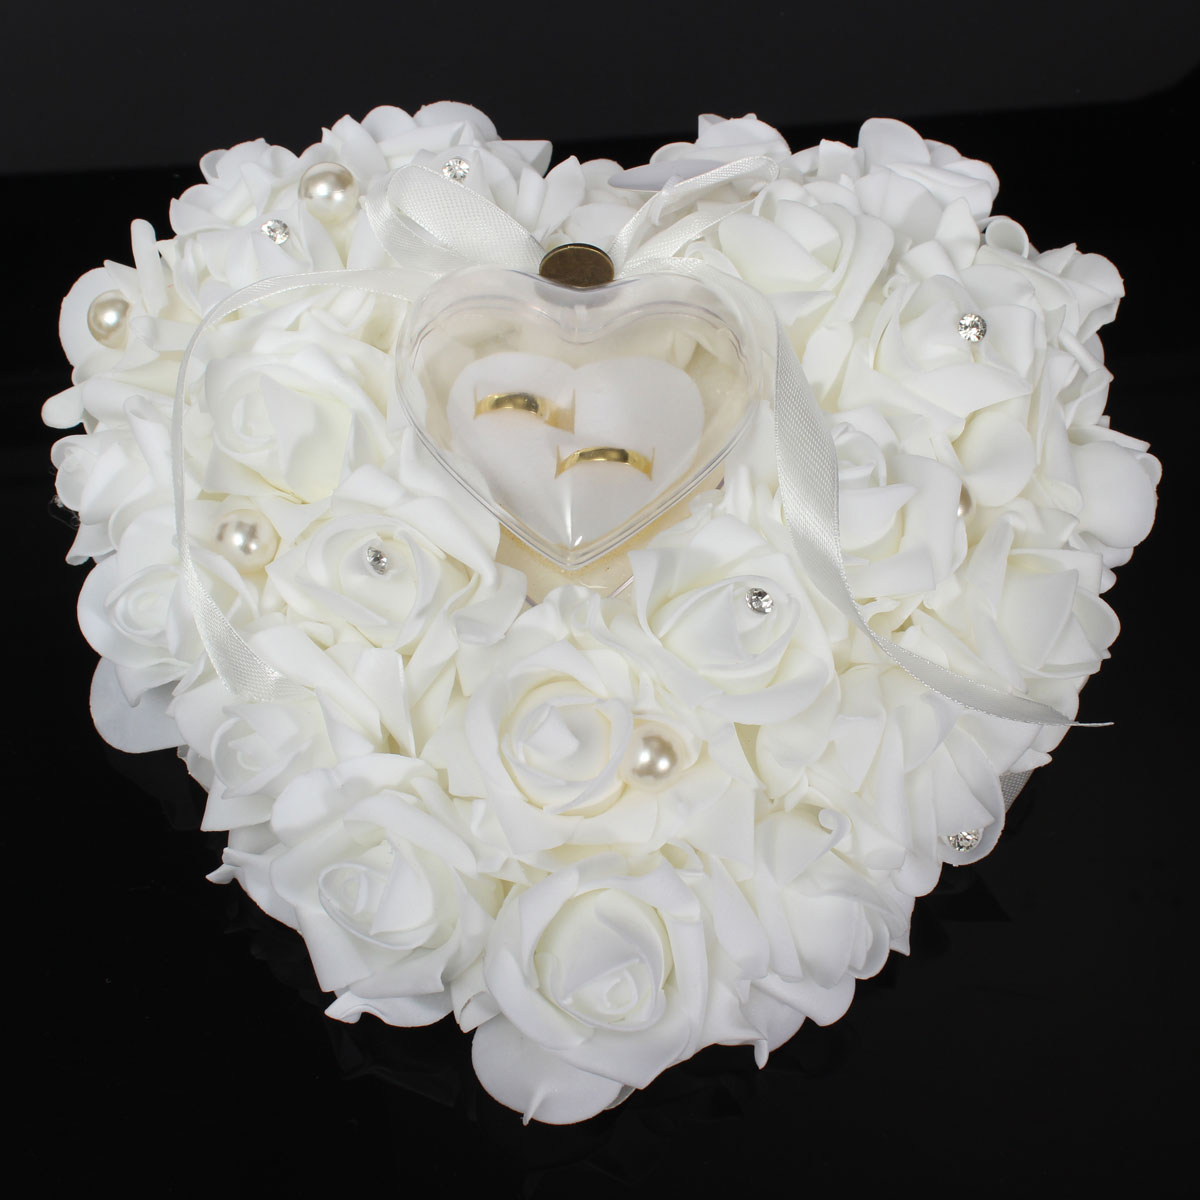 Wedding Favors Romantic Pearl Rose Heart Shaped Gift Ring Box Pillow Cushion